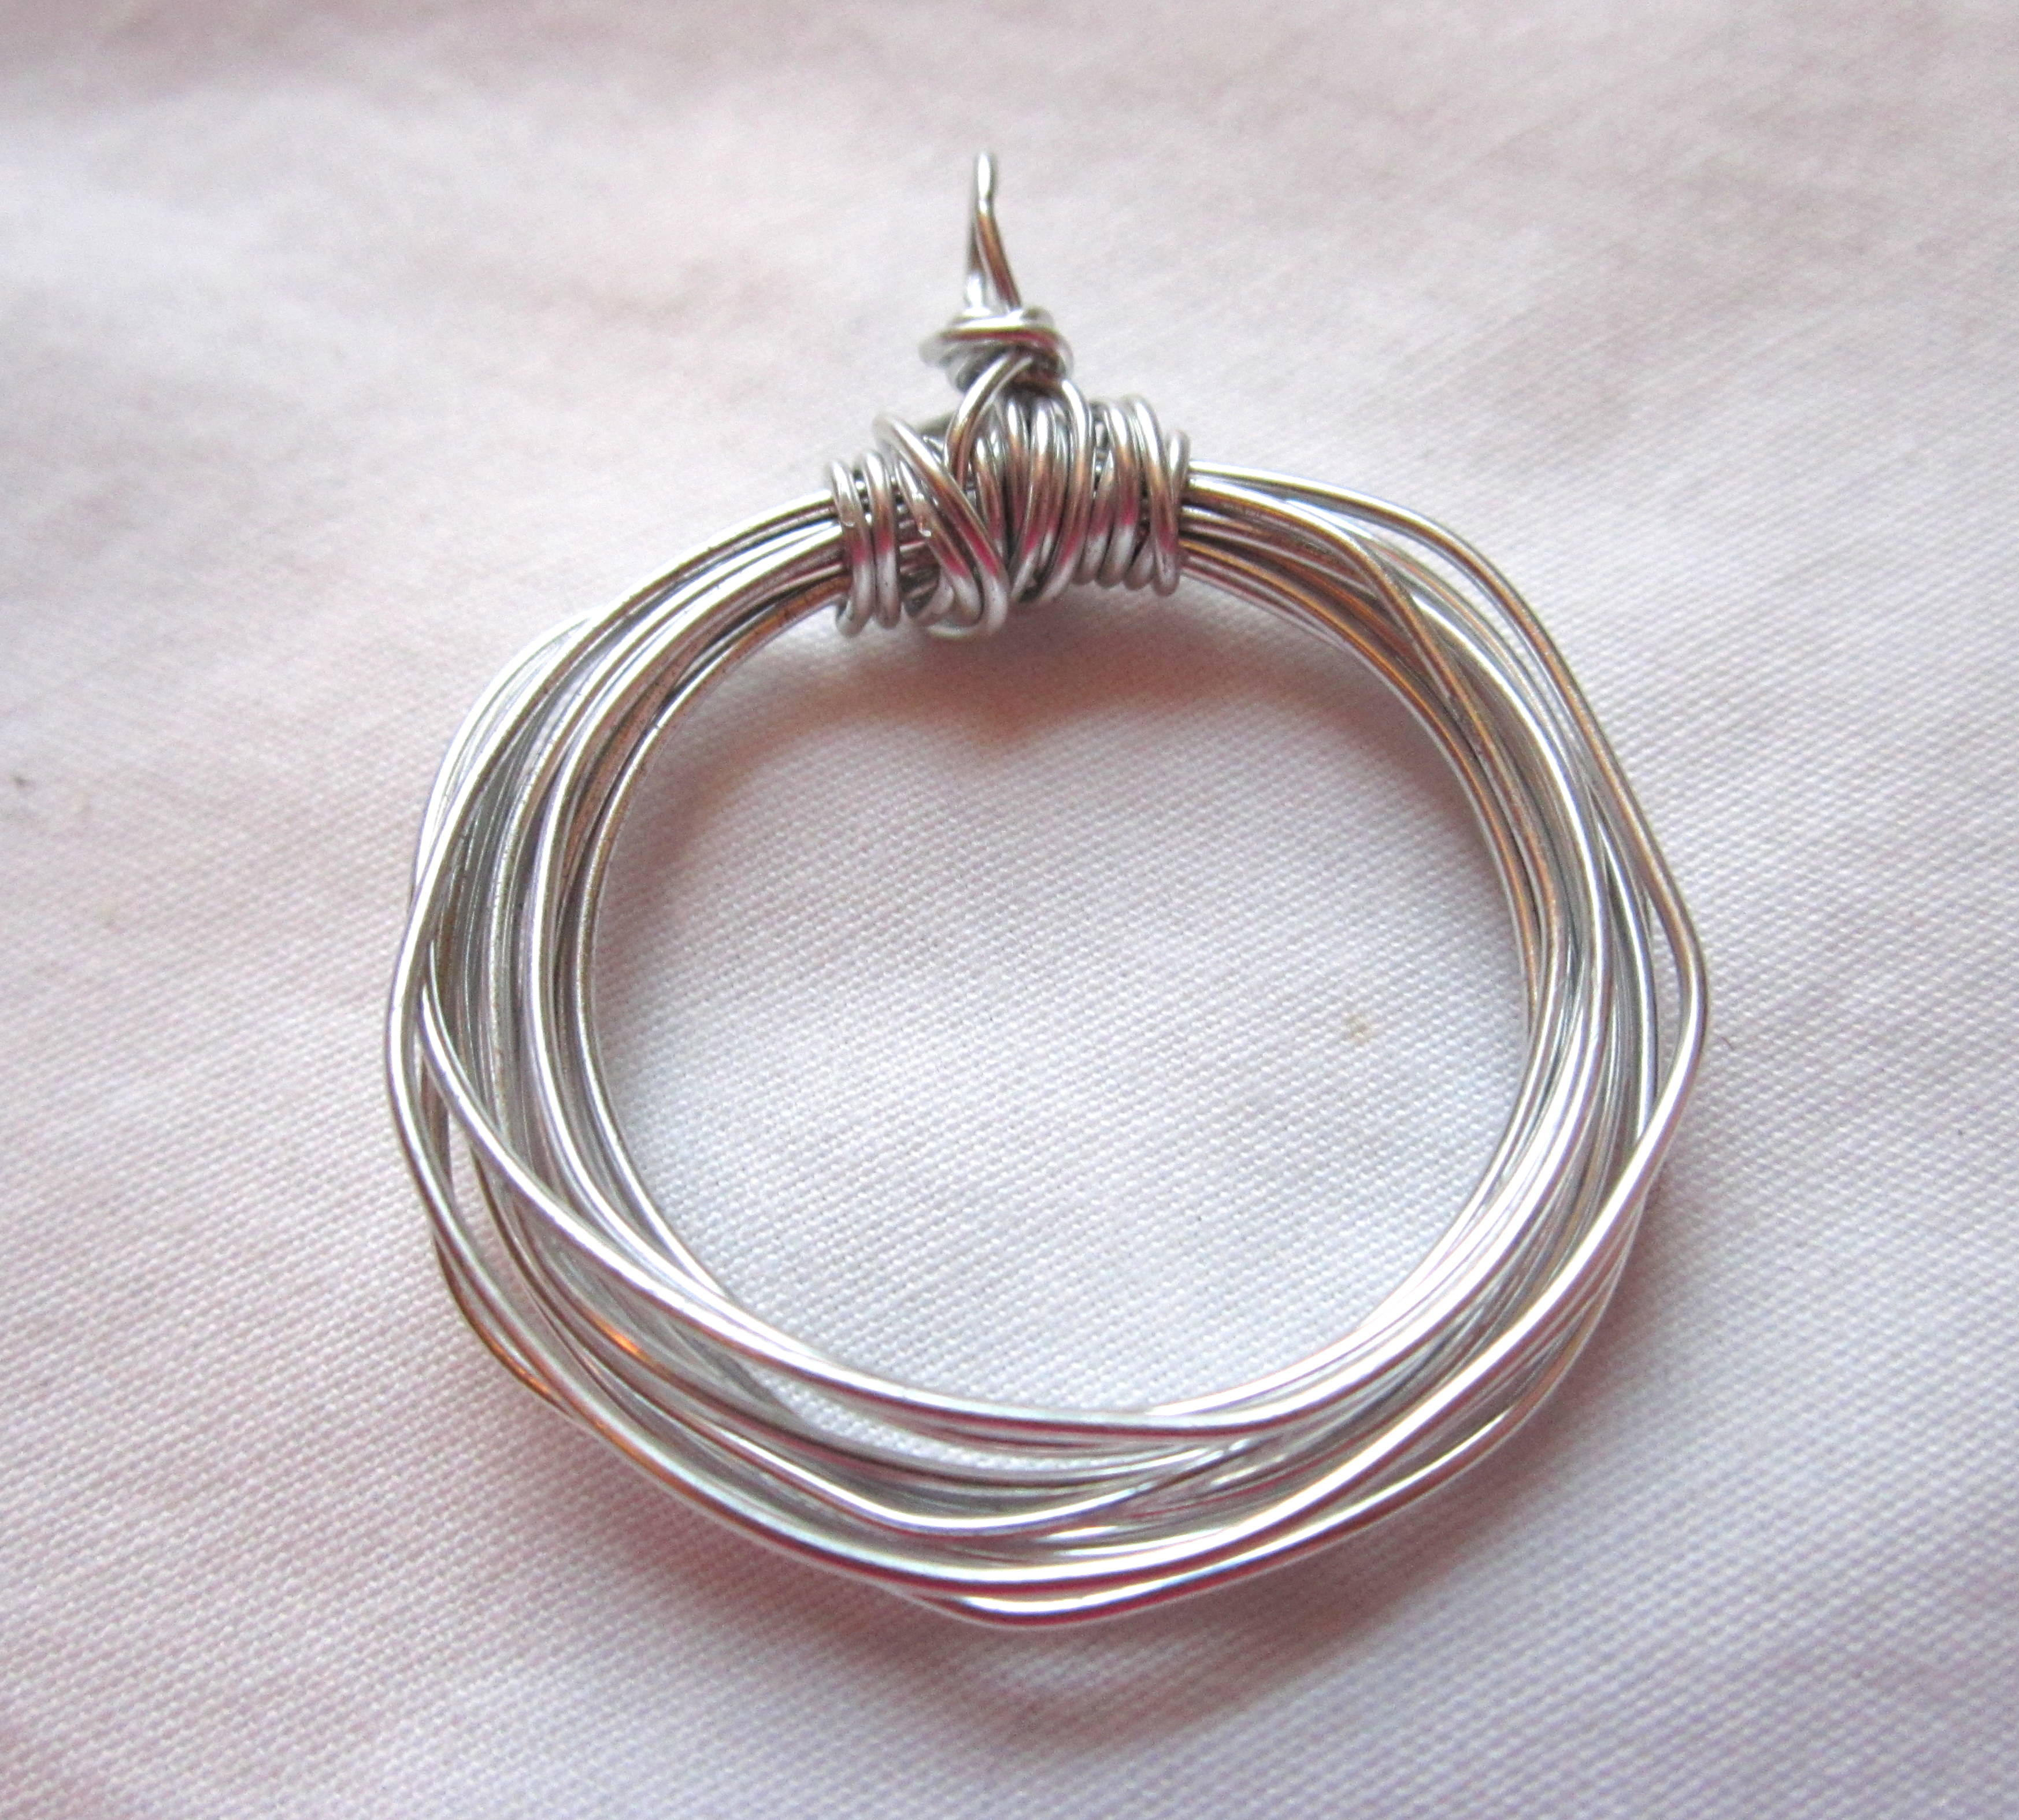 Ect tv episode 29 wire circle pendant video wire wrapping tutorial wire wrapped pendant tutorial 12 mozeypictures Image collections